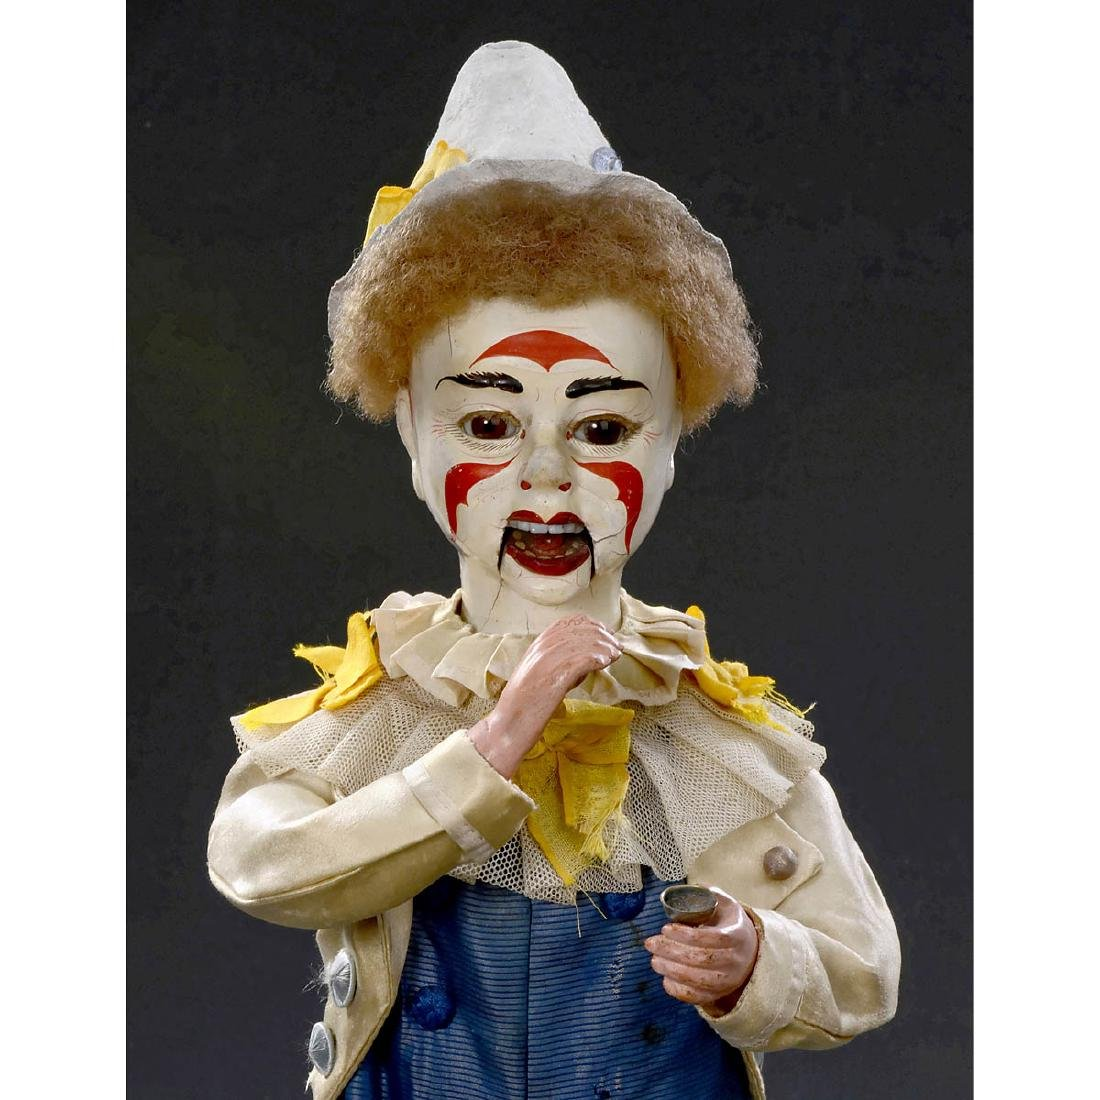 Musical Automaton Clown Taking Snuff by Adolph Müller,